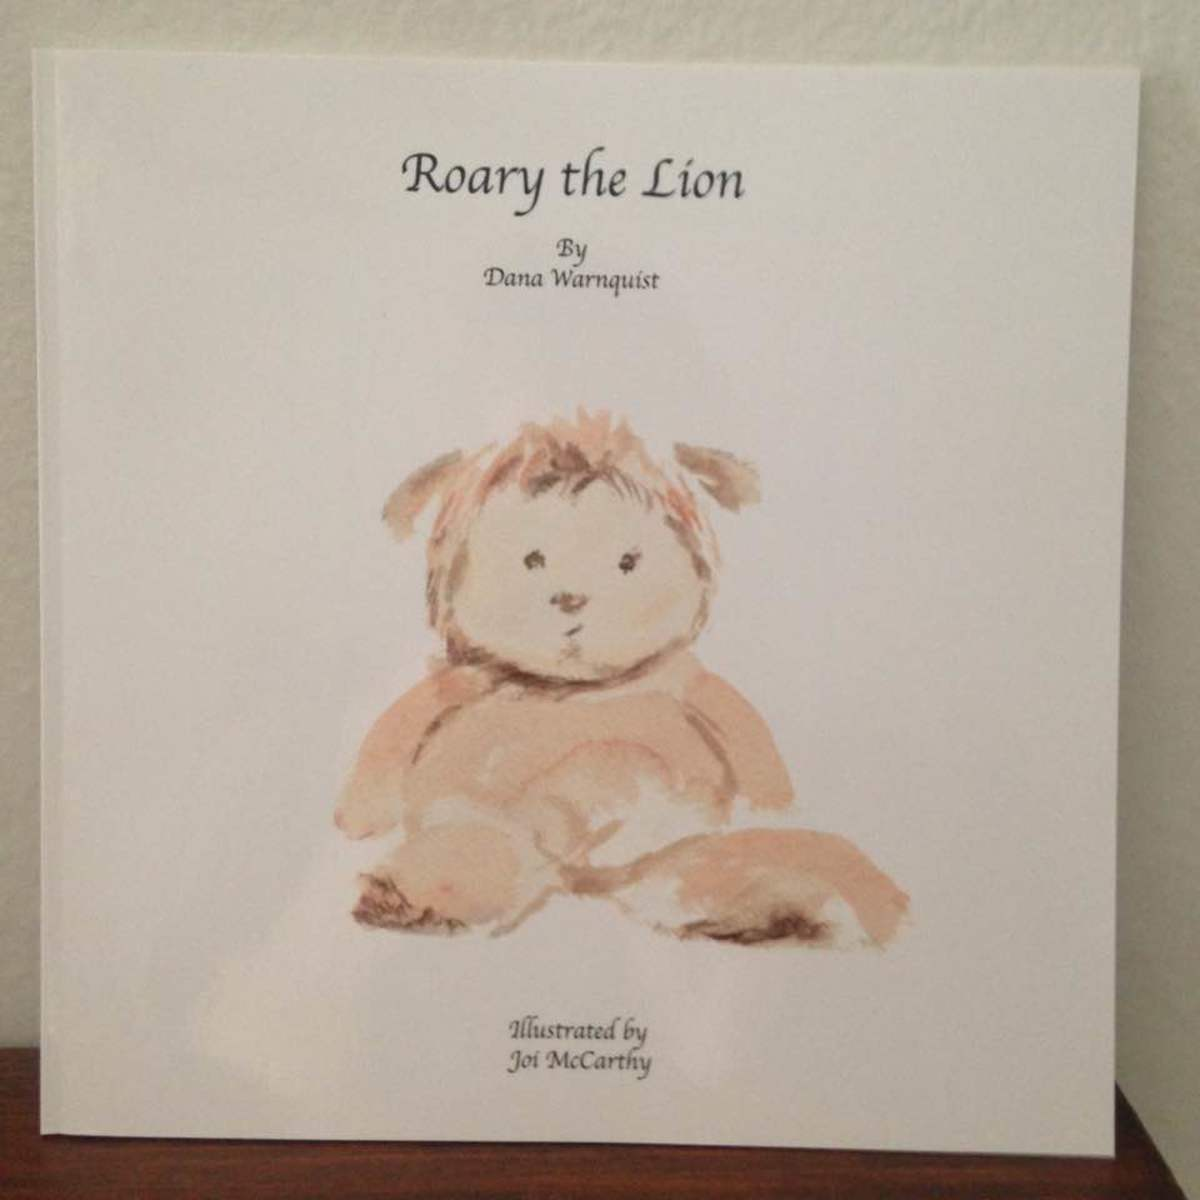 Beautifully written and illustrated to give tribute to Cecil the Lion